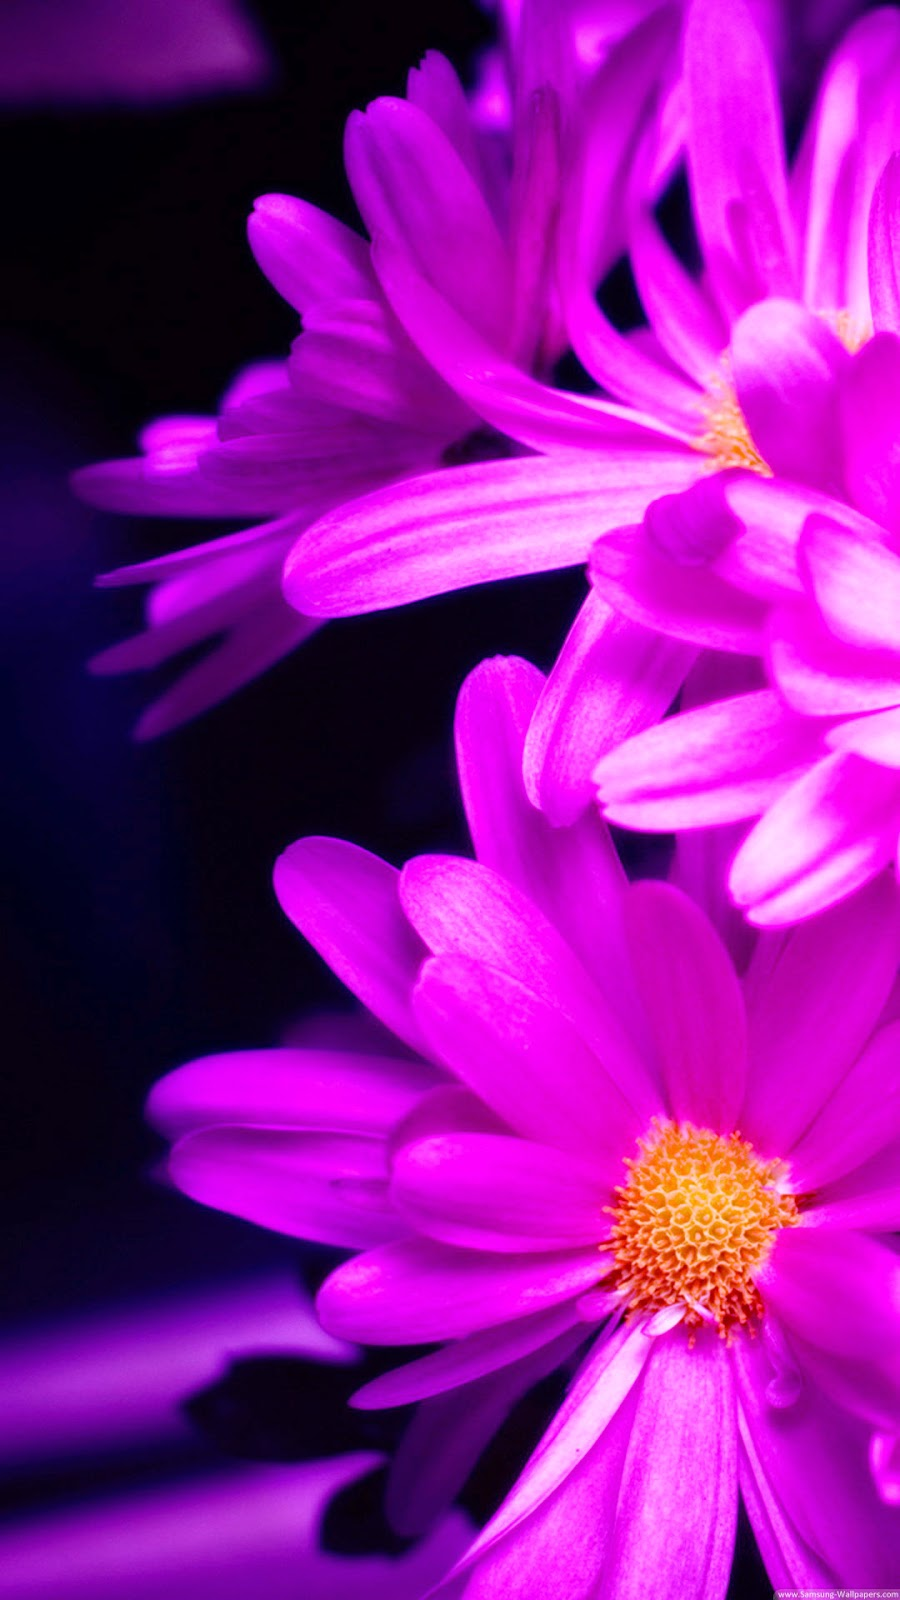 Wallpaper iphone violet - Wallpaper For Iphone 6 Plus